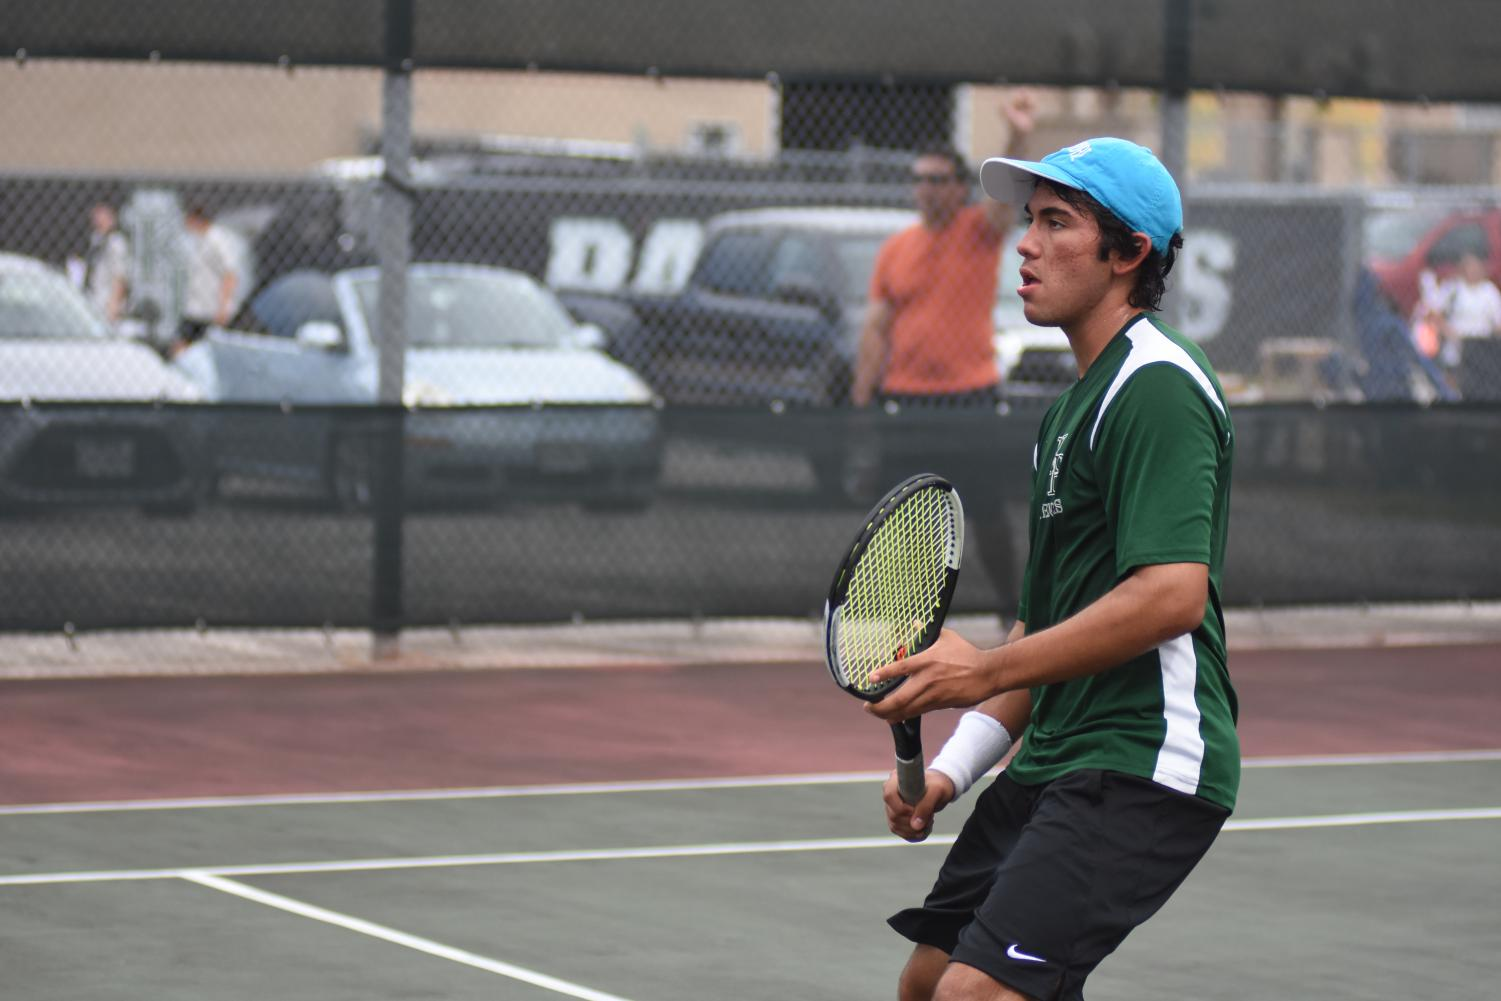 Robert Cornejo focuses during varsity tennis practice. He is one of two senior boys on the team and has been asked to teach tennis lessons.